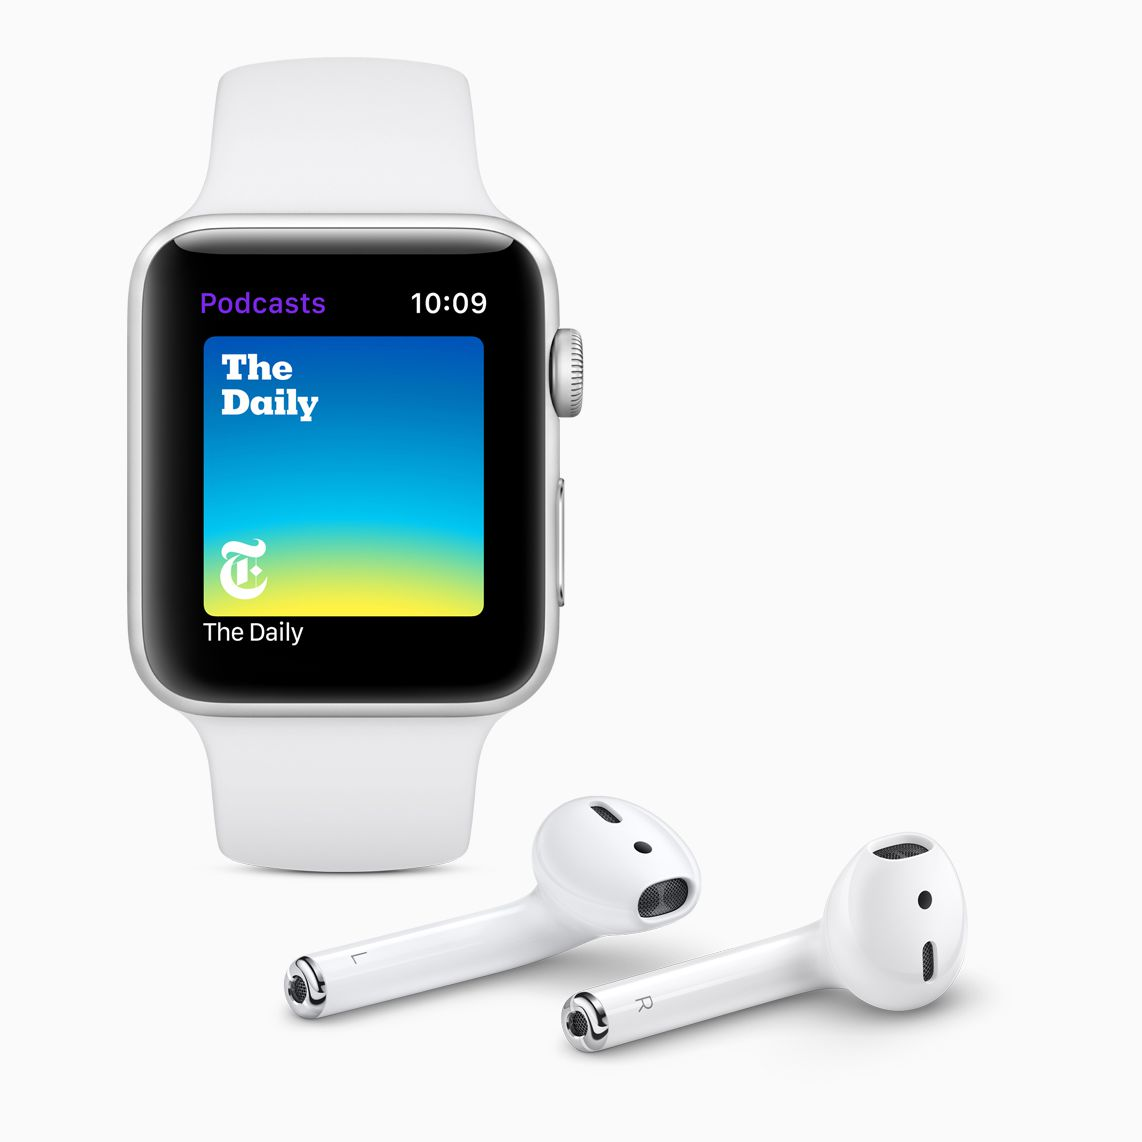 Listen to Podcasts on Apple Watch Without An iPhone